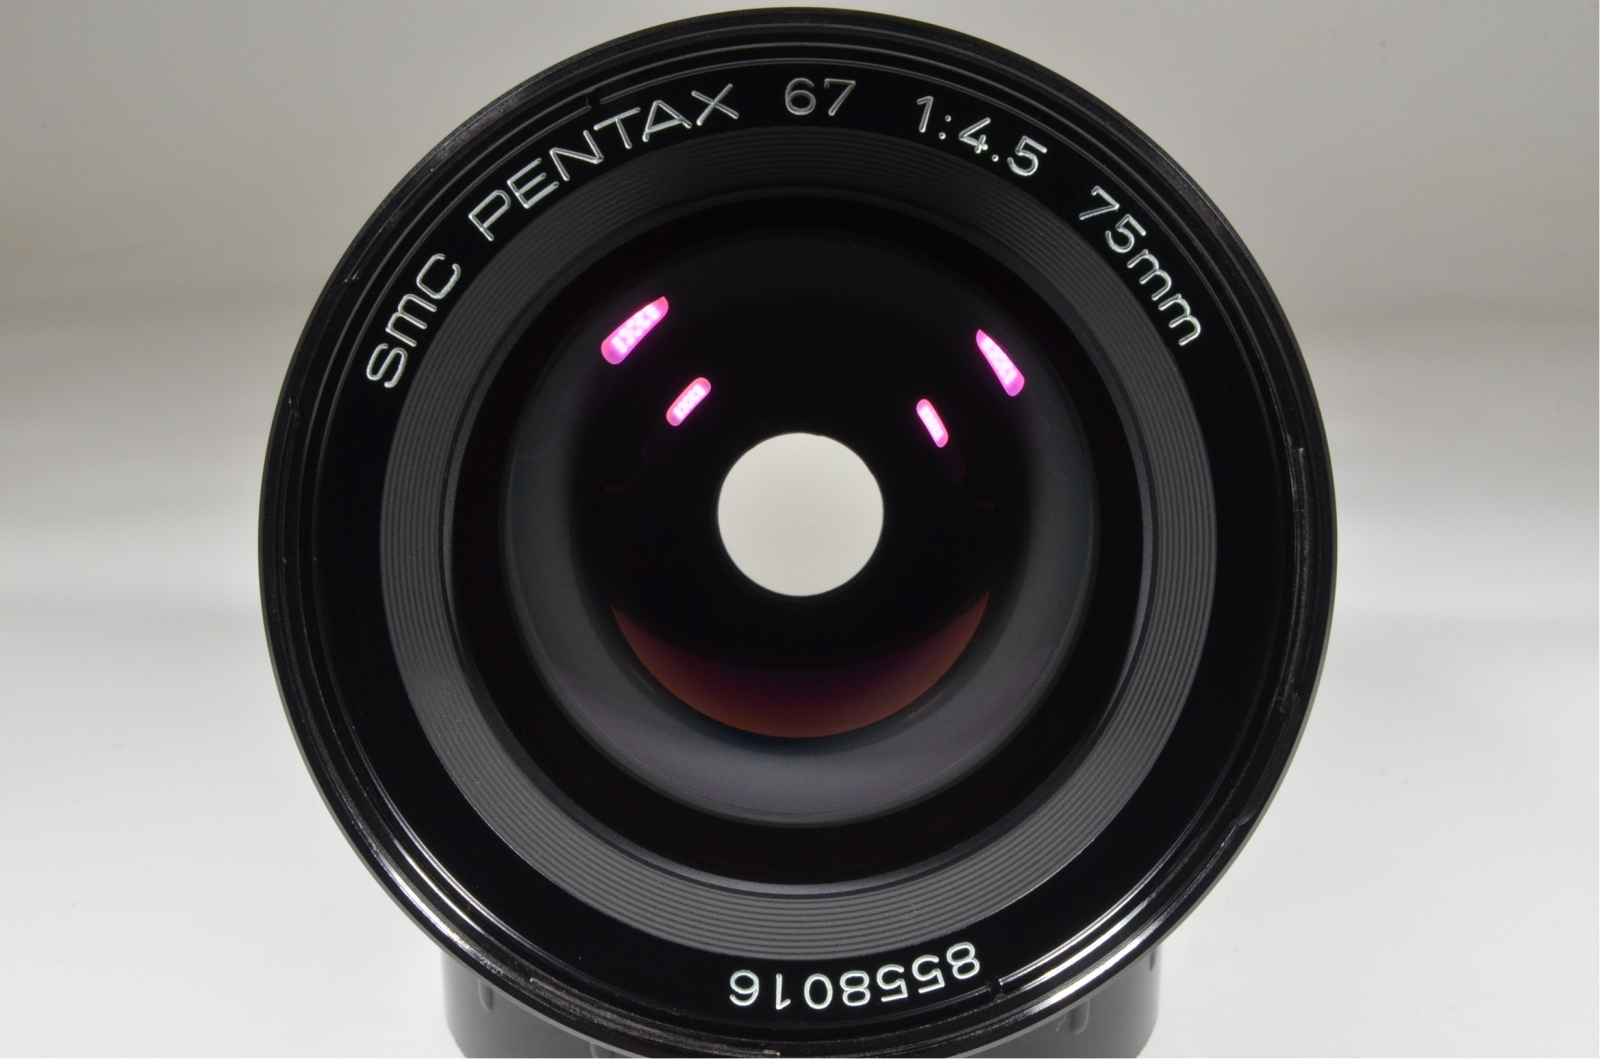 pentax 67 ttl, wood grip, smc 55mm, 75mm, 105mm, 135mm, extension tube and etc..